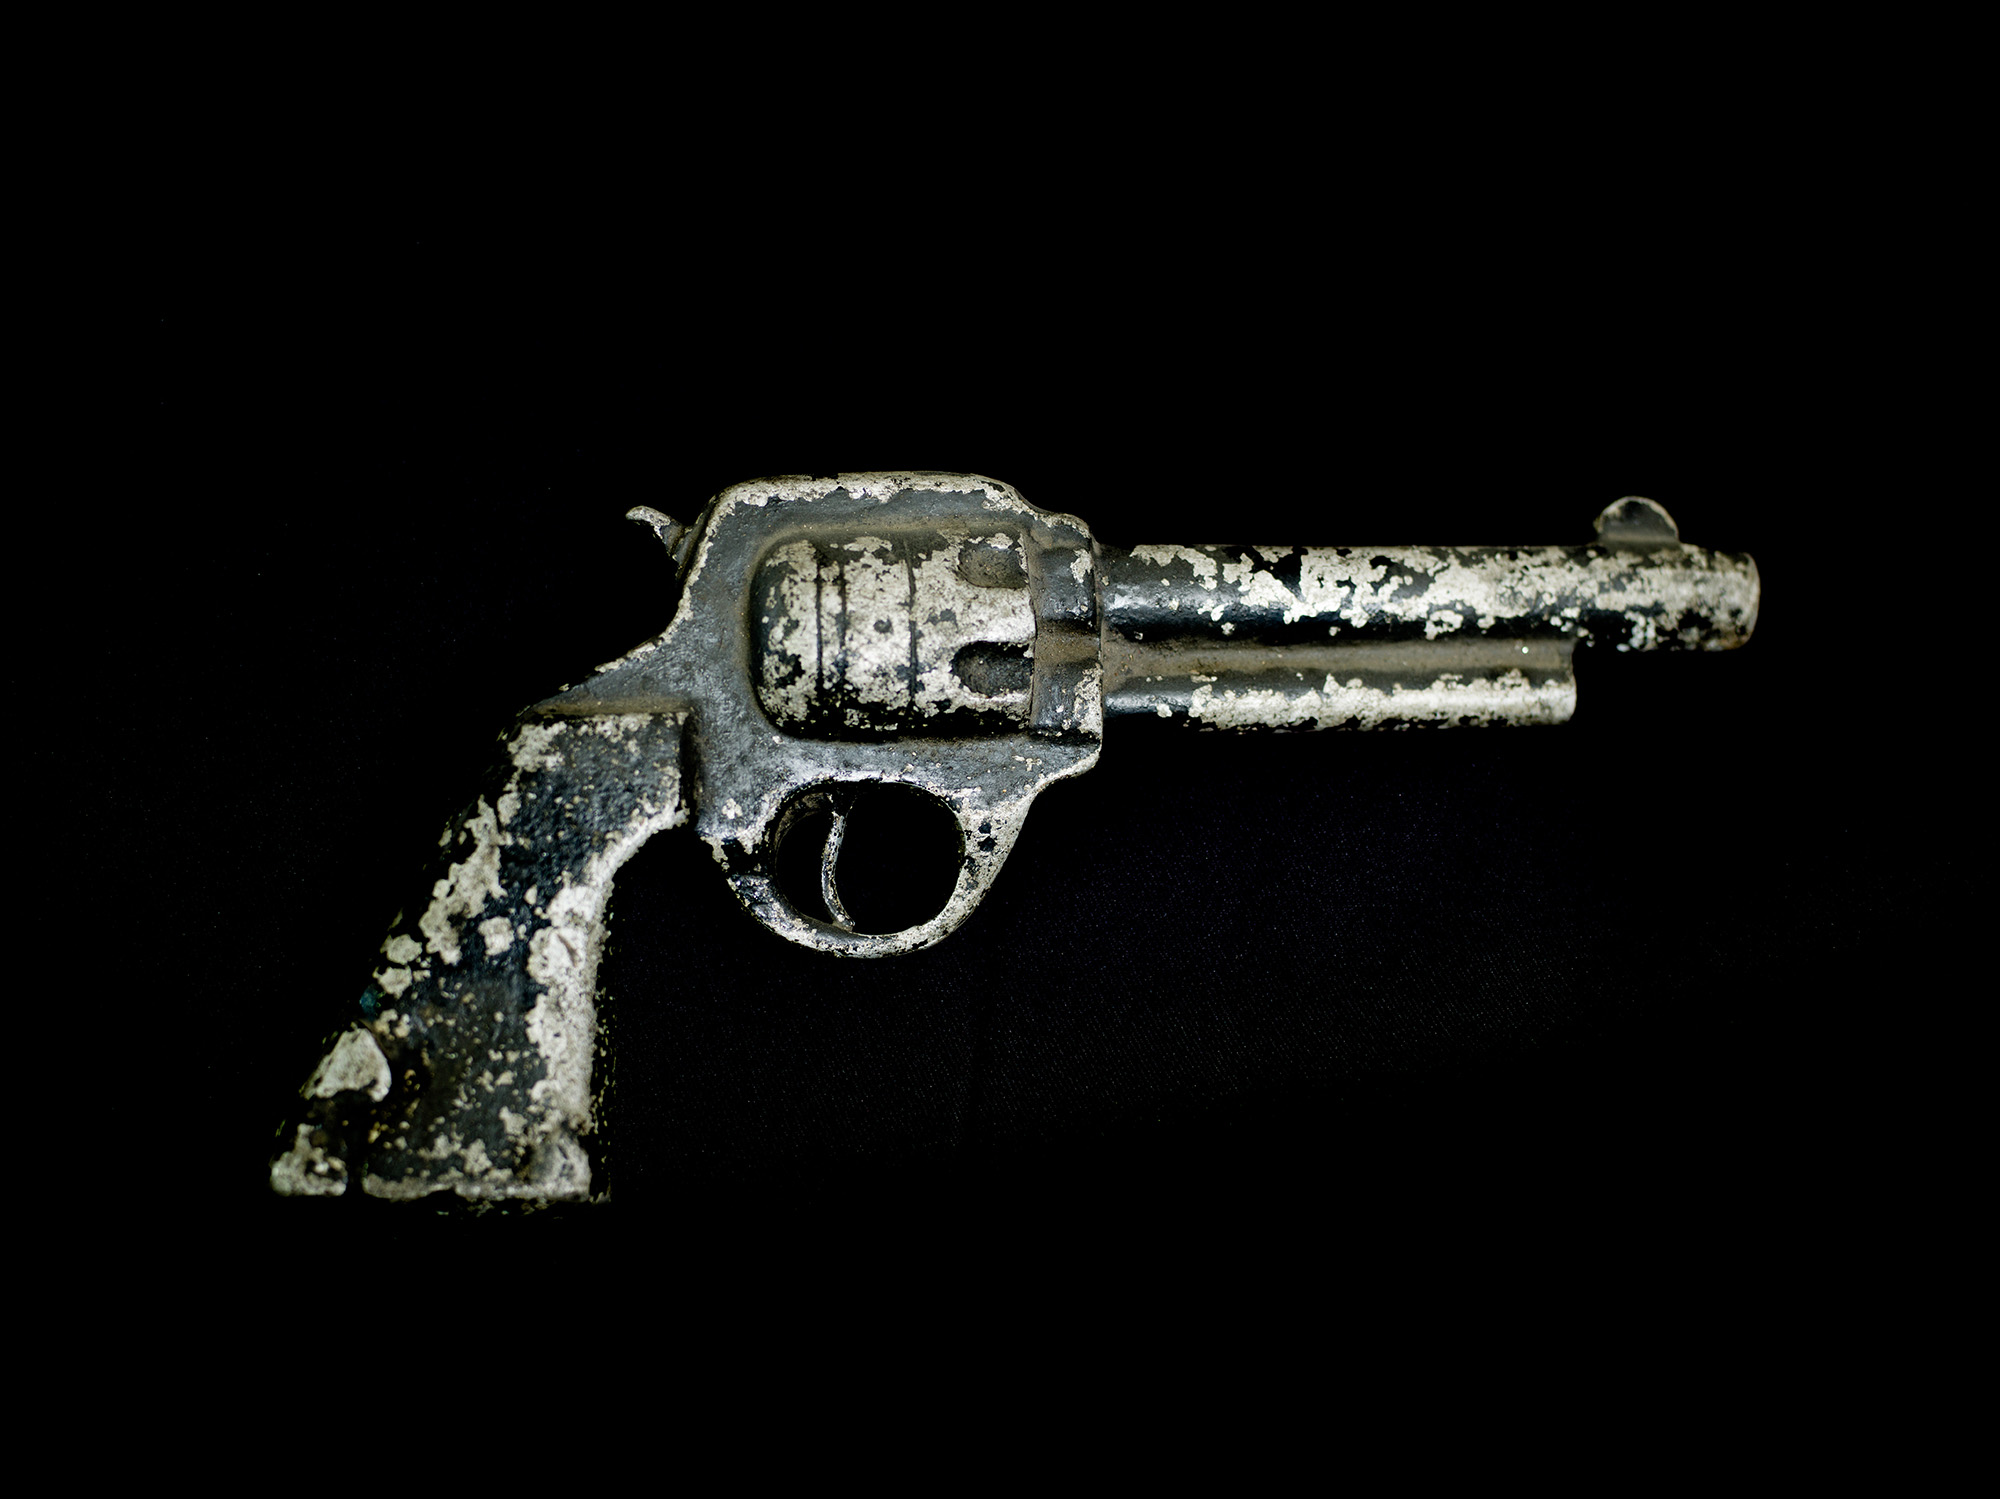 A pistol that was used in the 1974 film  Naw Kuu Ma . The film tells the story of a Karen nurse called Naw Kuu Ma, who ventures into the jungle with a Karen National Liberation Army Solider to fight the Burmese Army.